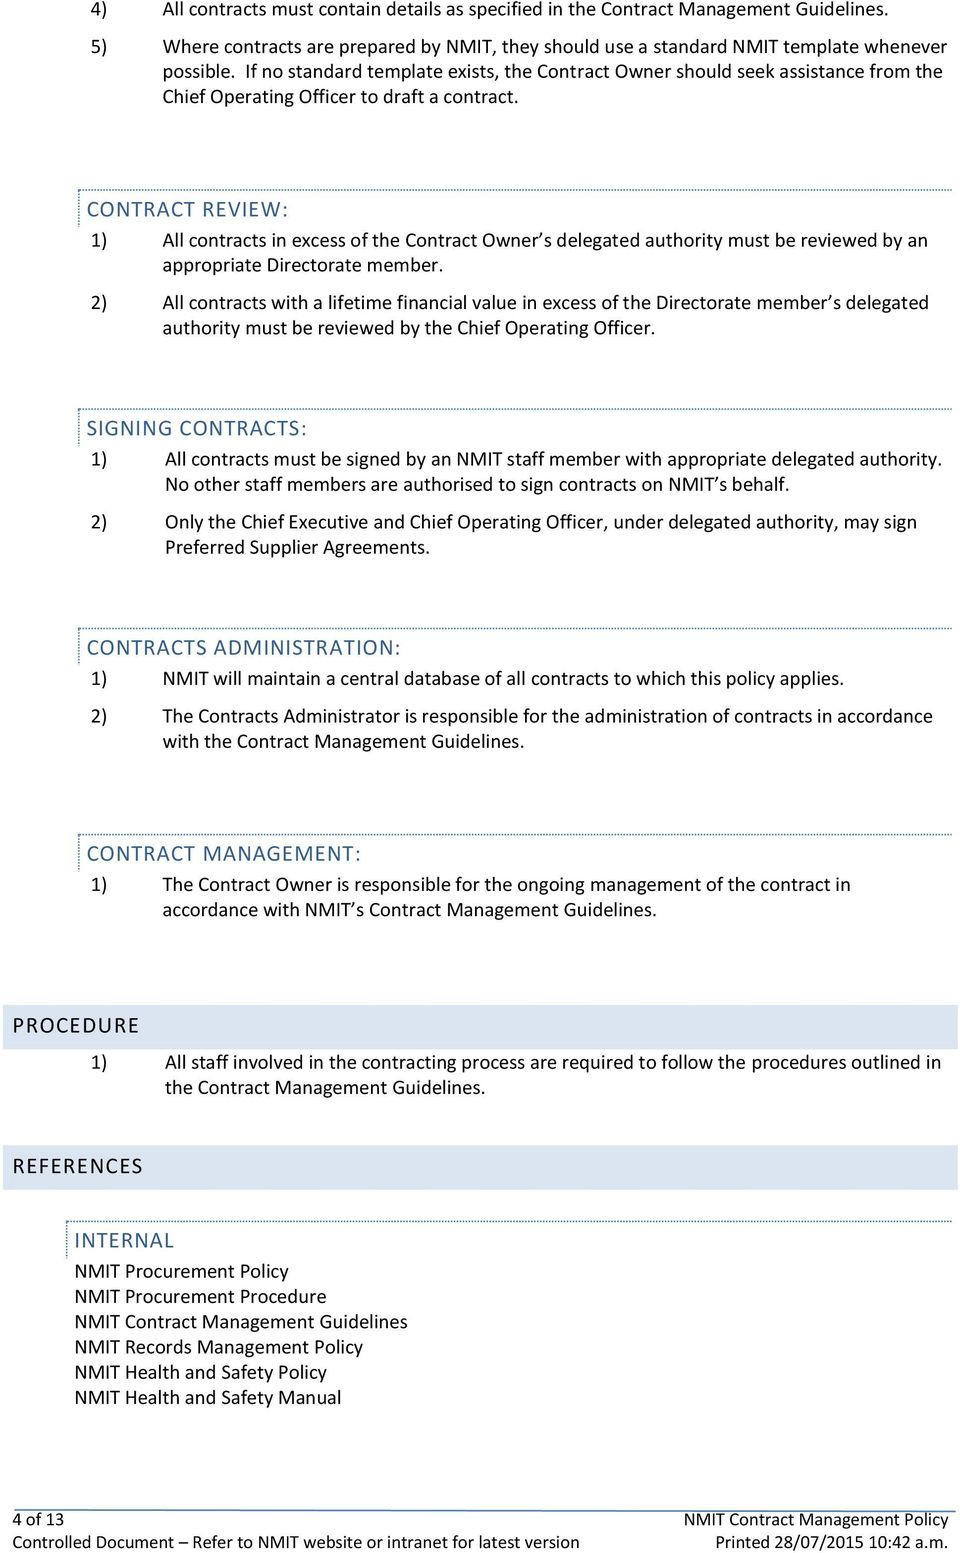 Contract Management Policy Pdf Free Download